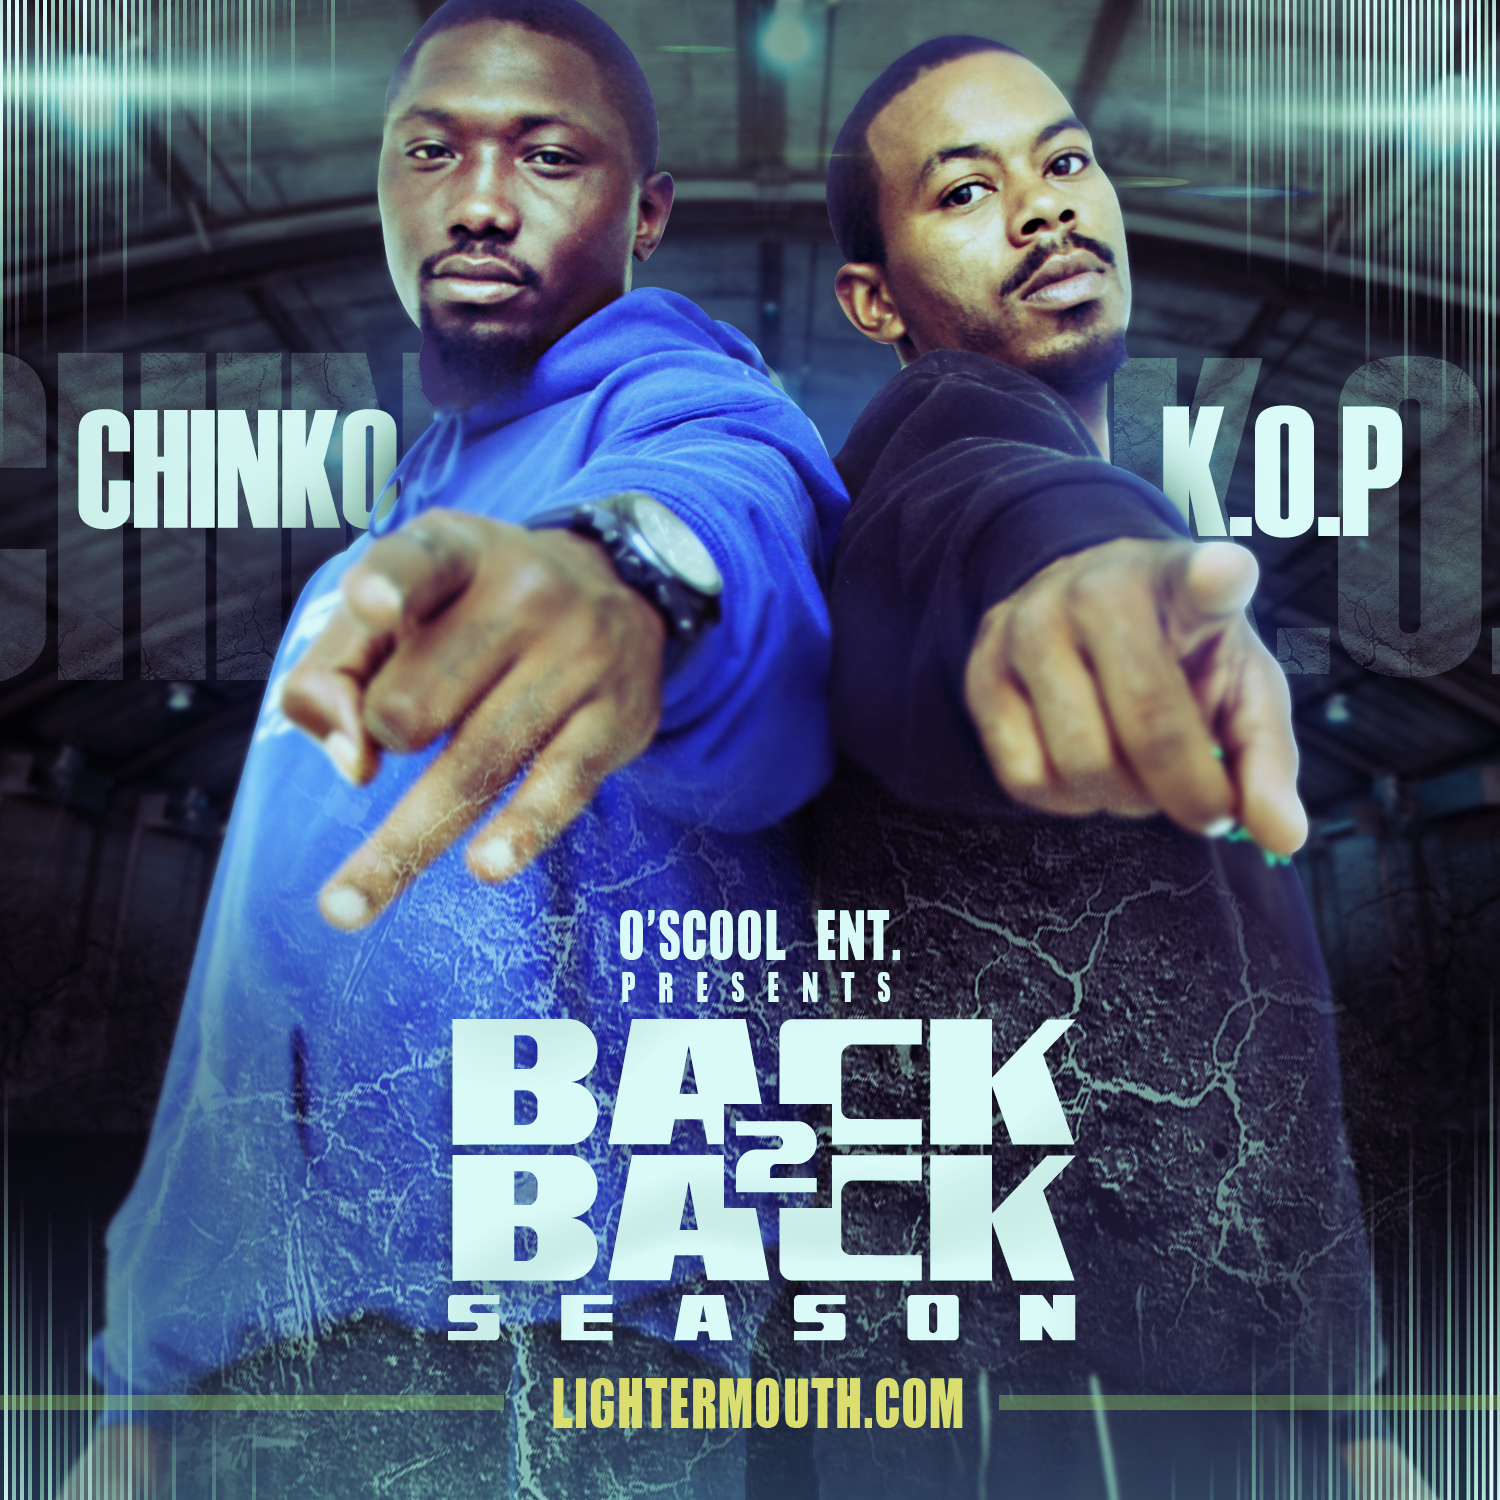 Chinko (@Chinkdagreat) & K.O.P. – Back 2 Back Season (In-store Signing 11/6/11 @215 Swag)